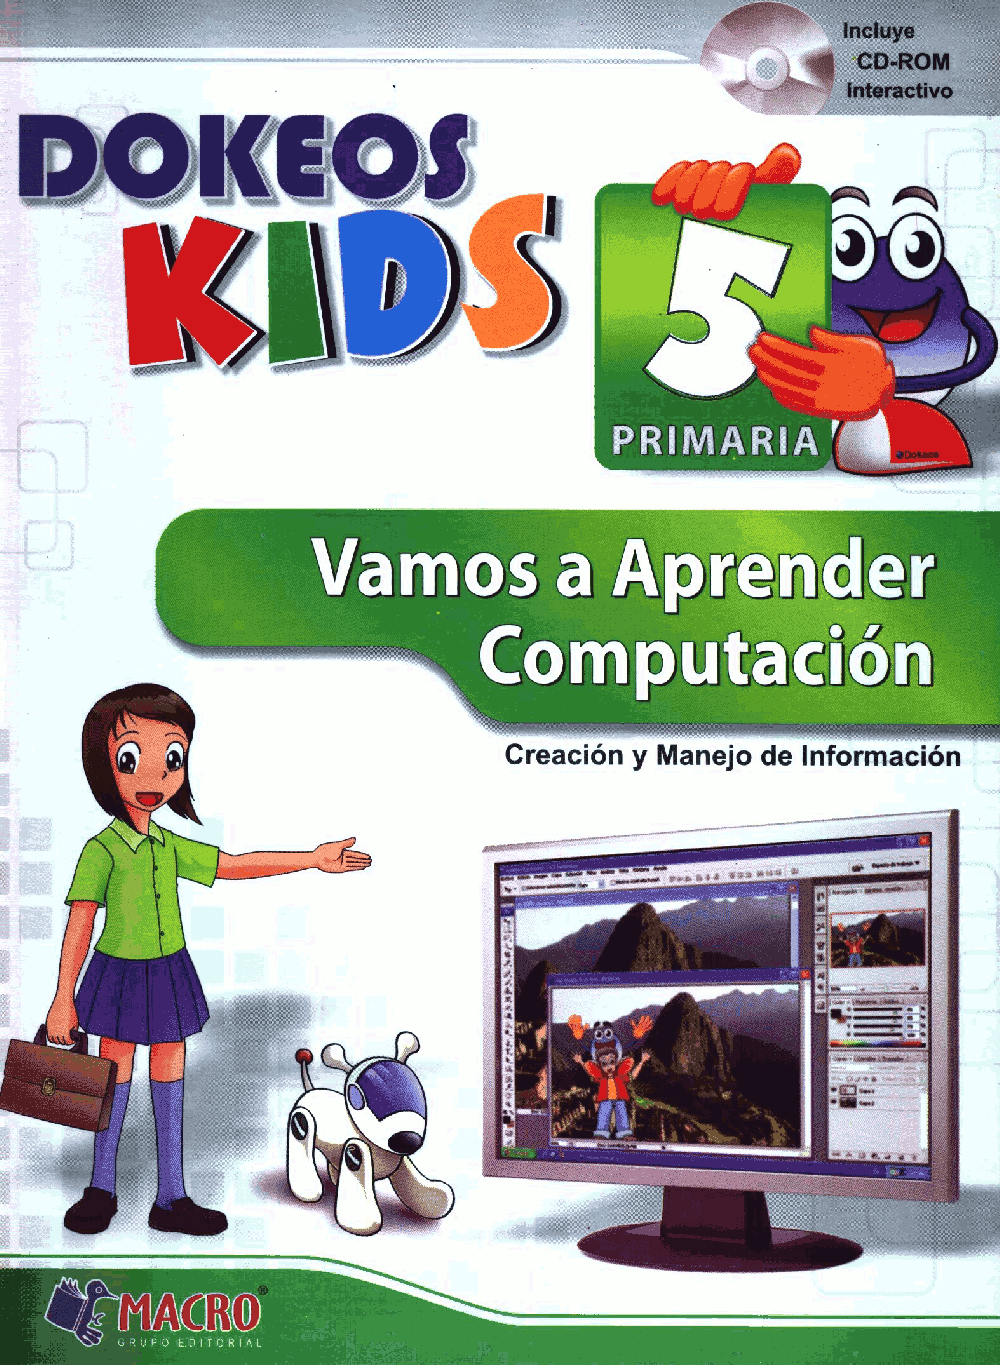 Peru's Dokeos Kids Syllabus, 5th volume